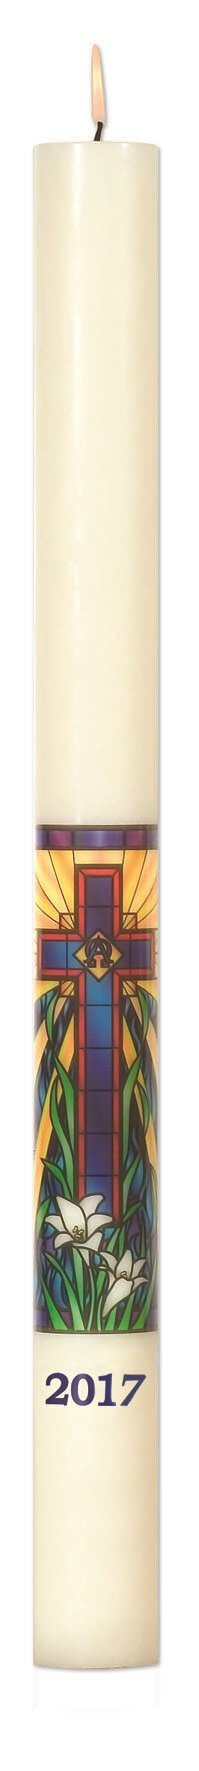 No 3 Radiant Light Mosaic Paschal Candle